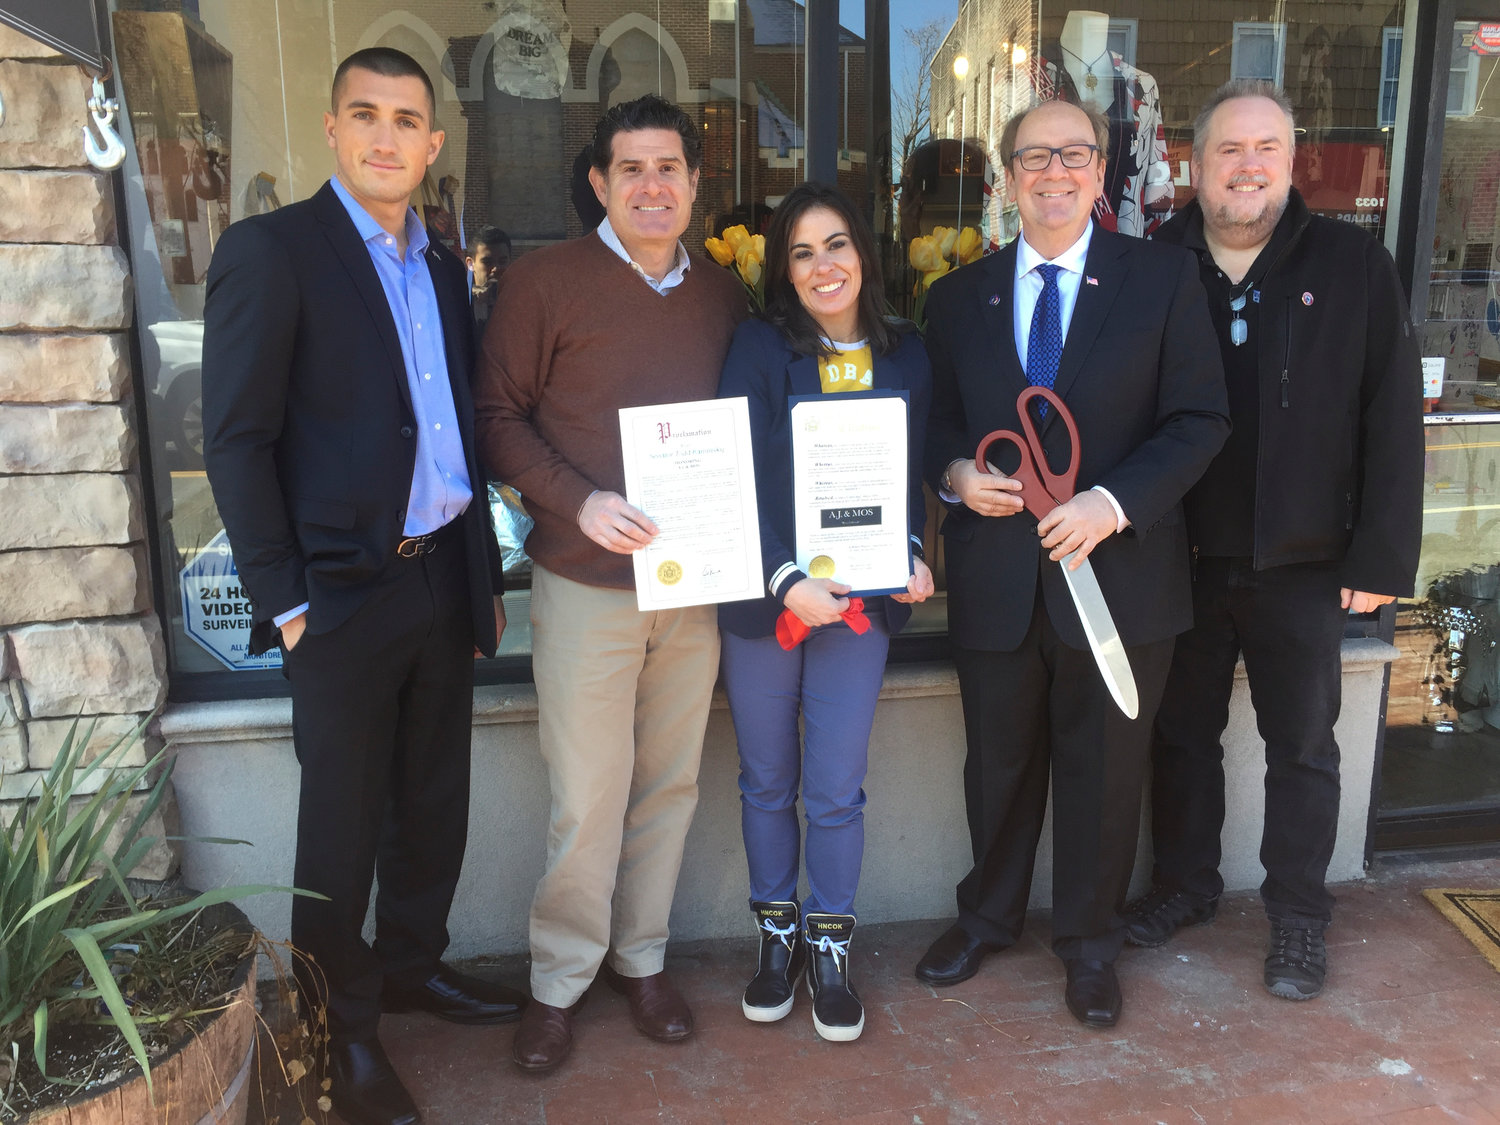 A.J. & MOS was welcomed with a ribbon-cutting on March 5. From left Joseph Bicocchi, the district manager for State Assemblywoman Melissa Miller, Gregg Star, Beth Star, Hewlett-Woodmere Business Association President David Friedman and HWBA First Vice President John Roblin.